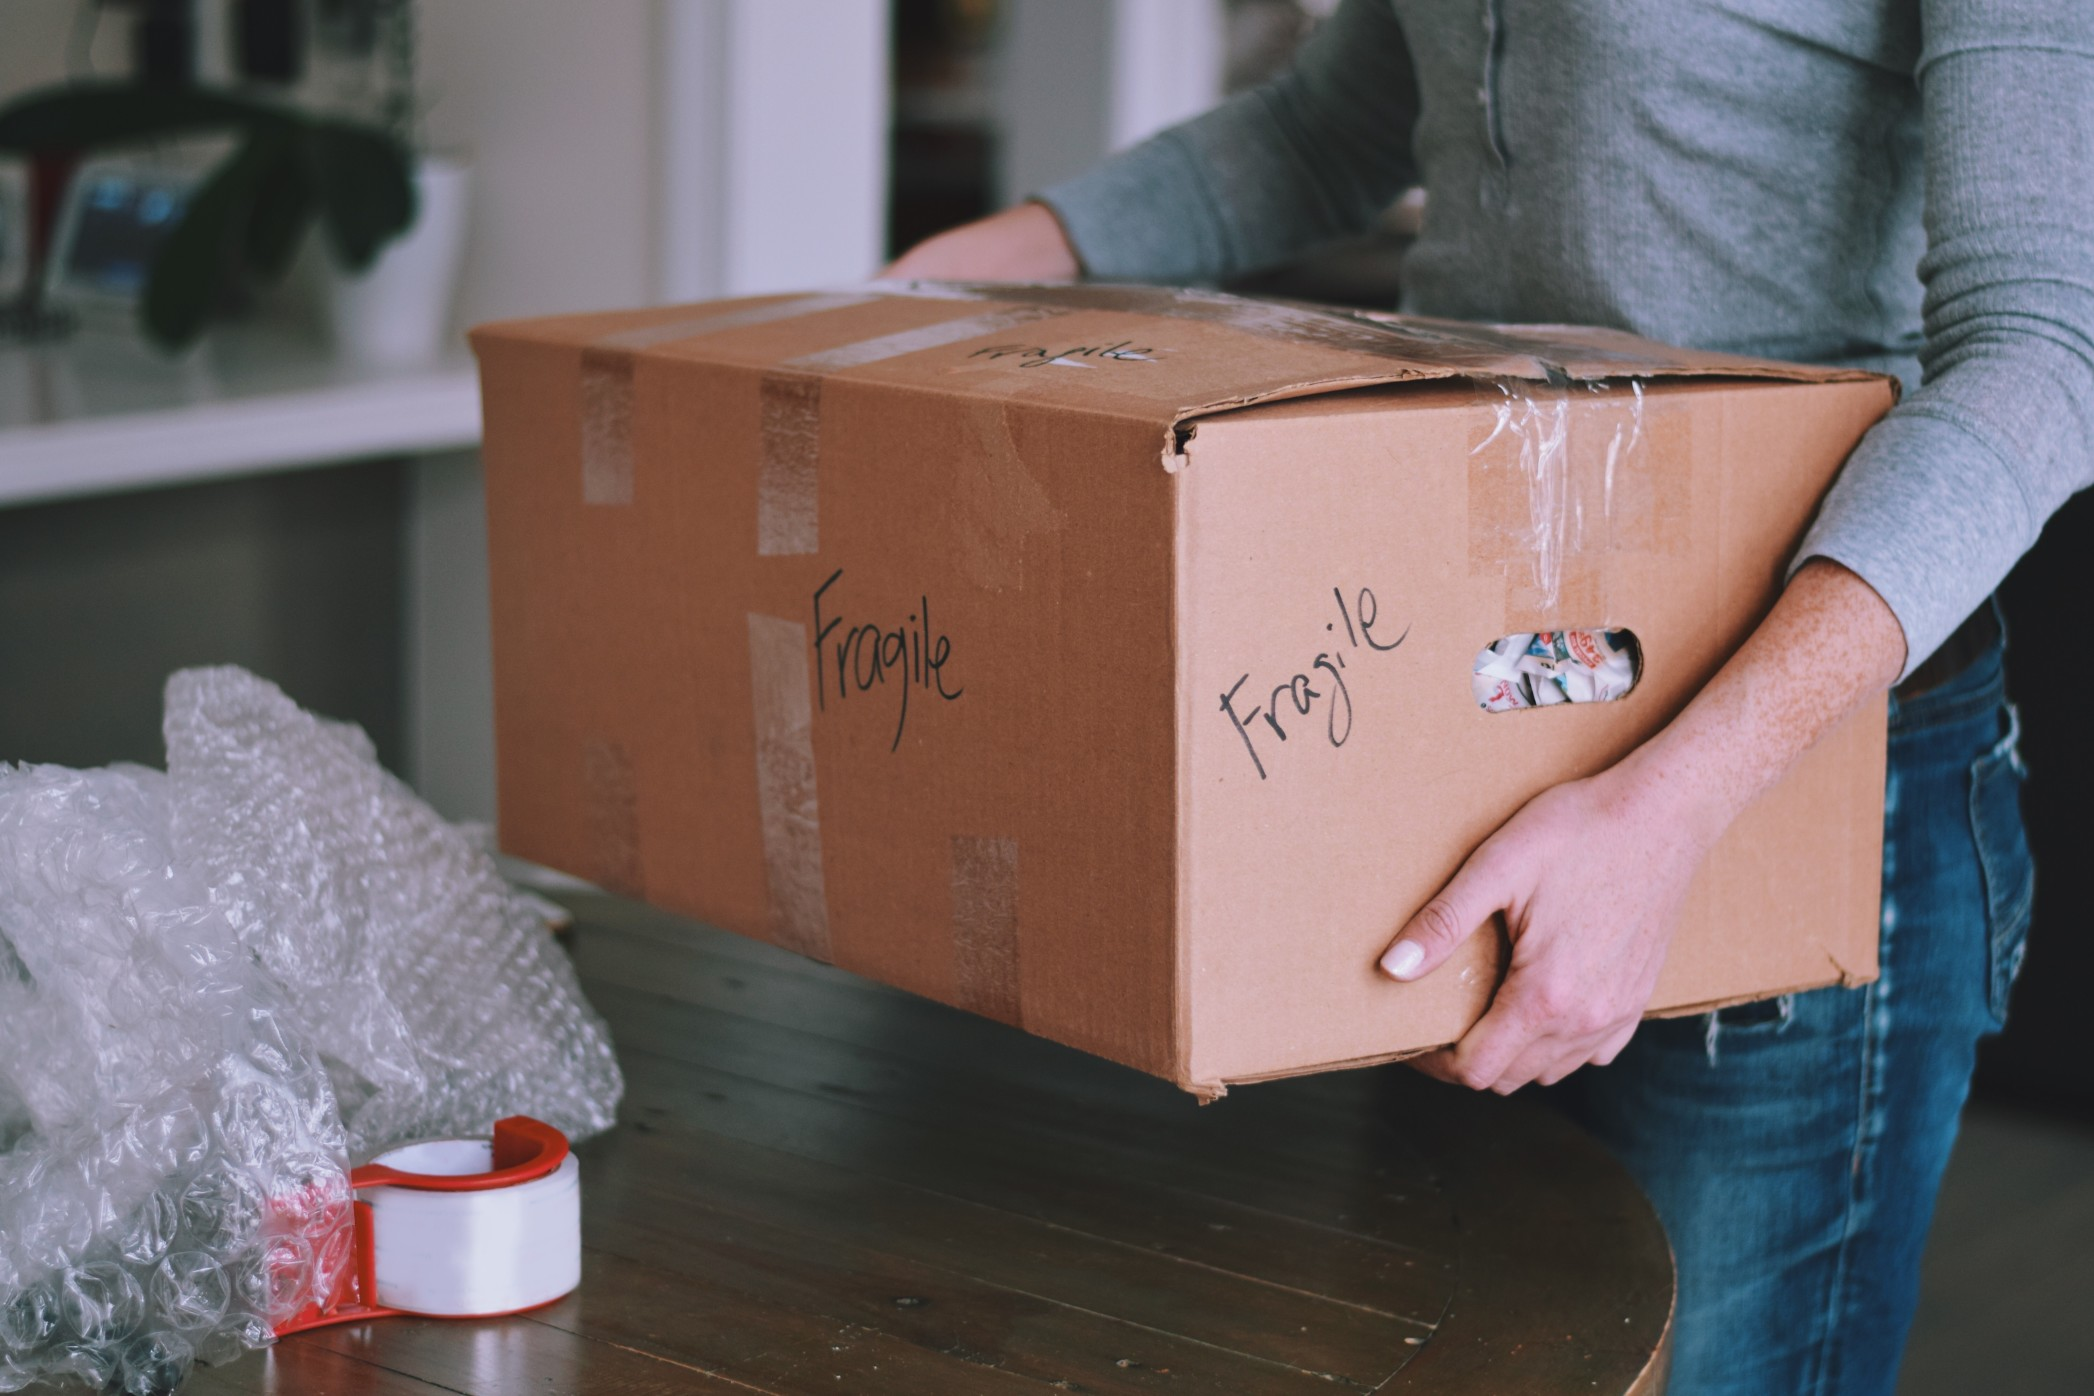 Cheap Moving Supplies that Won't Break the Bank